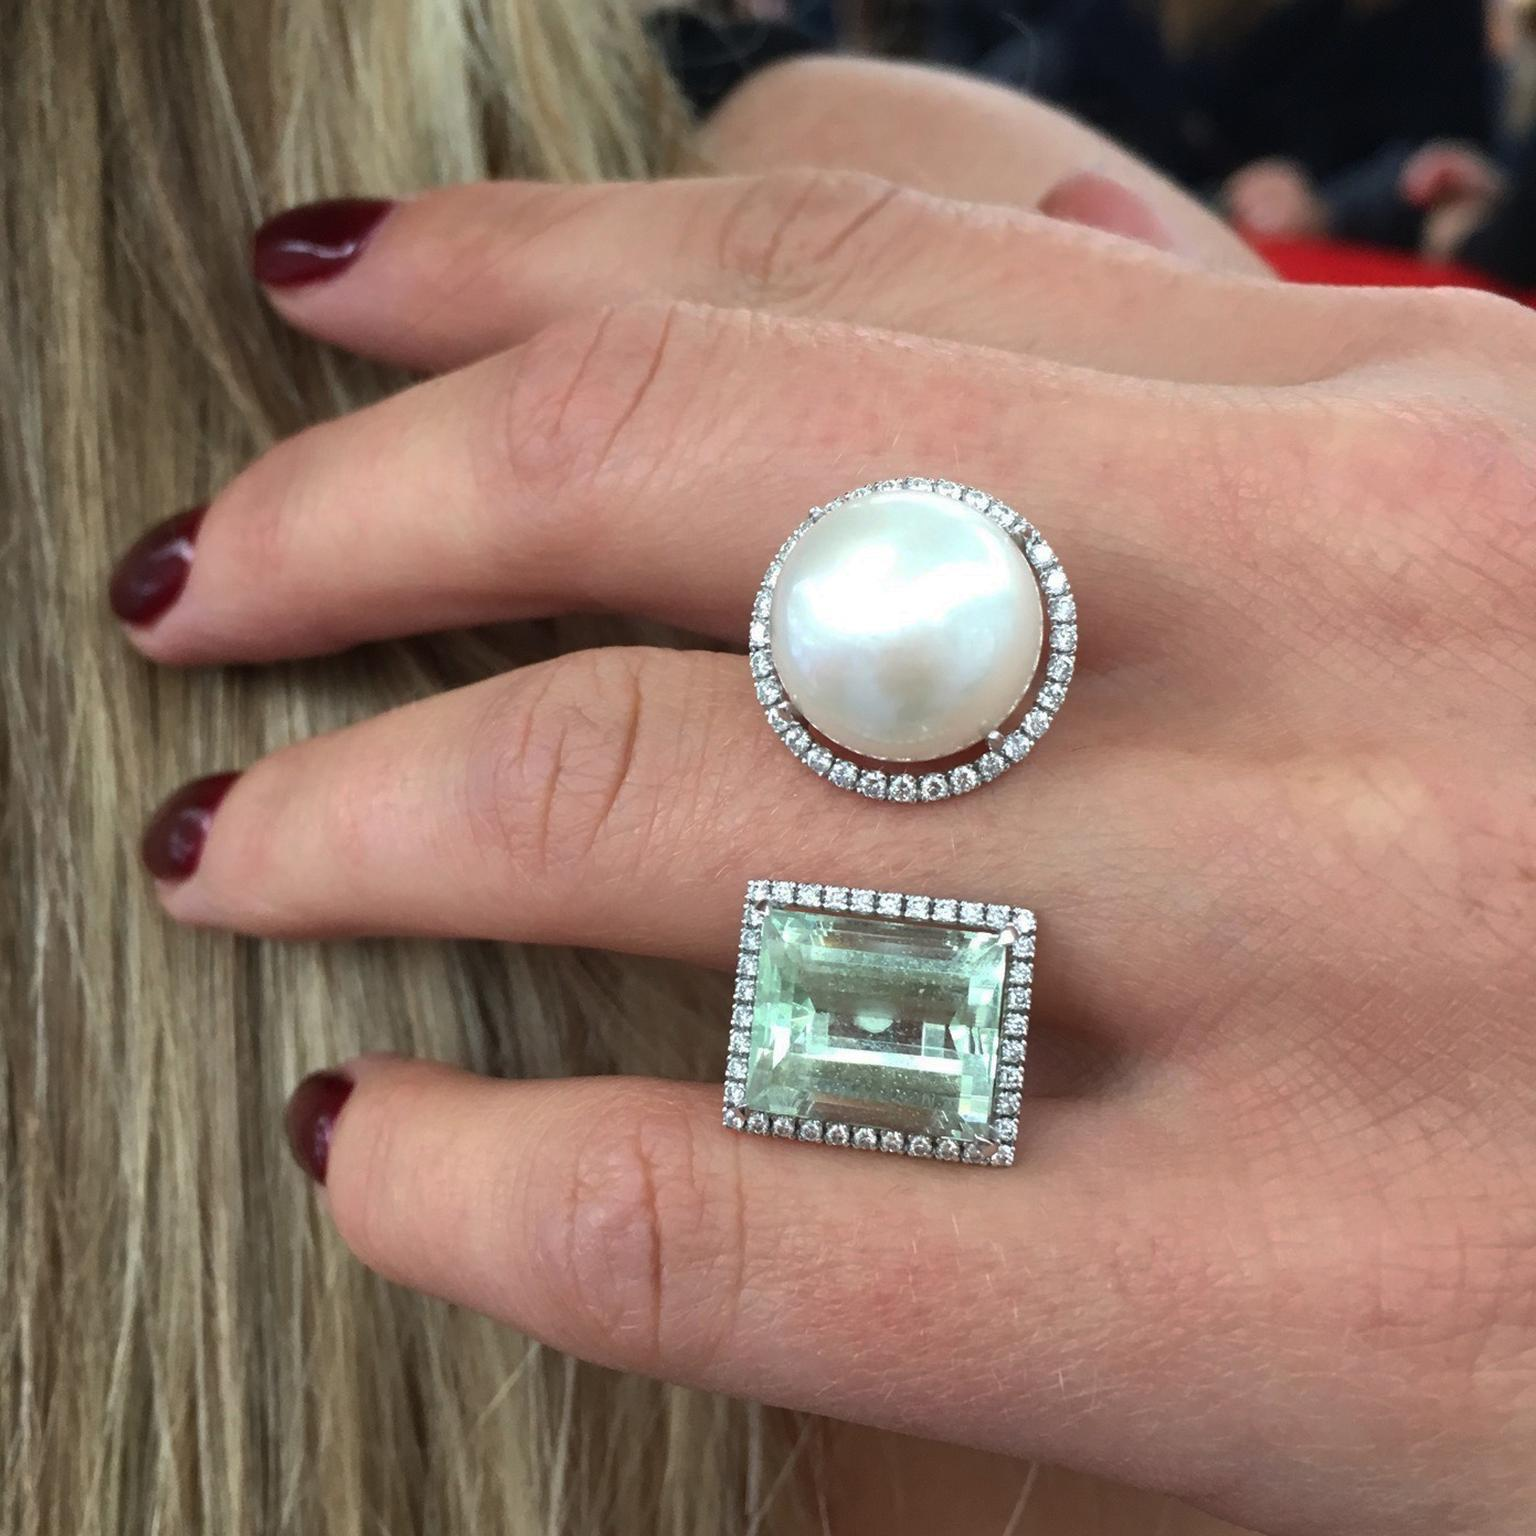 Nadine Aysoy green tourmaline and pearl ring